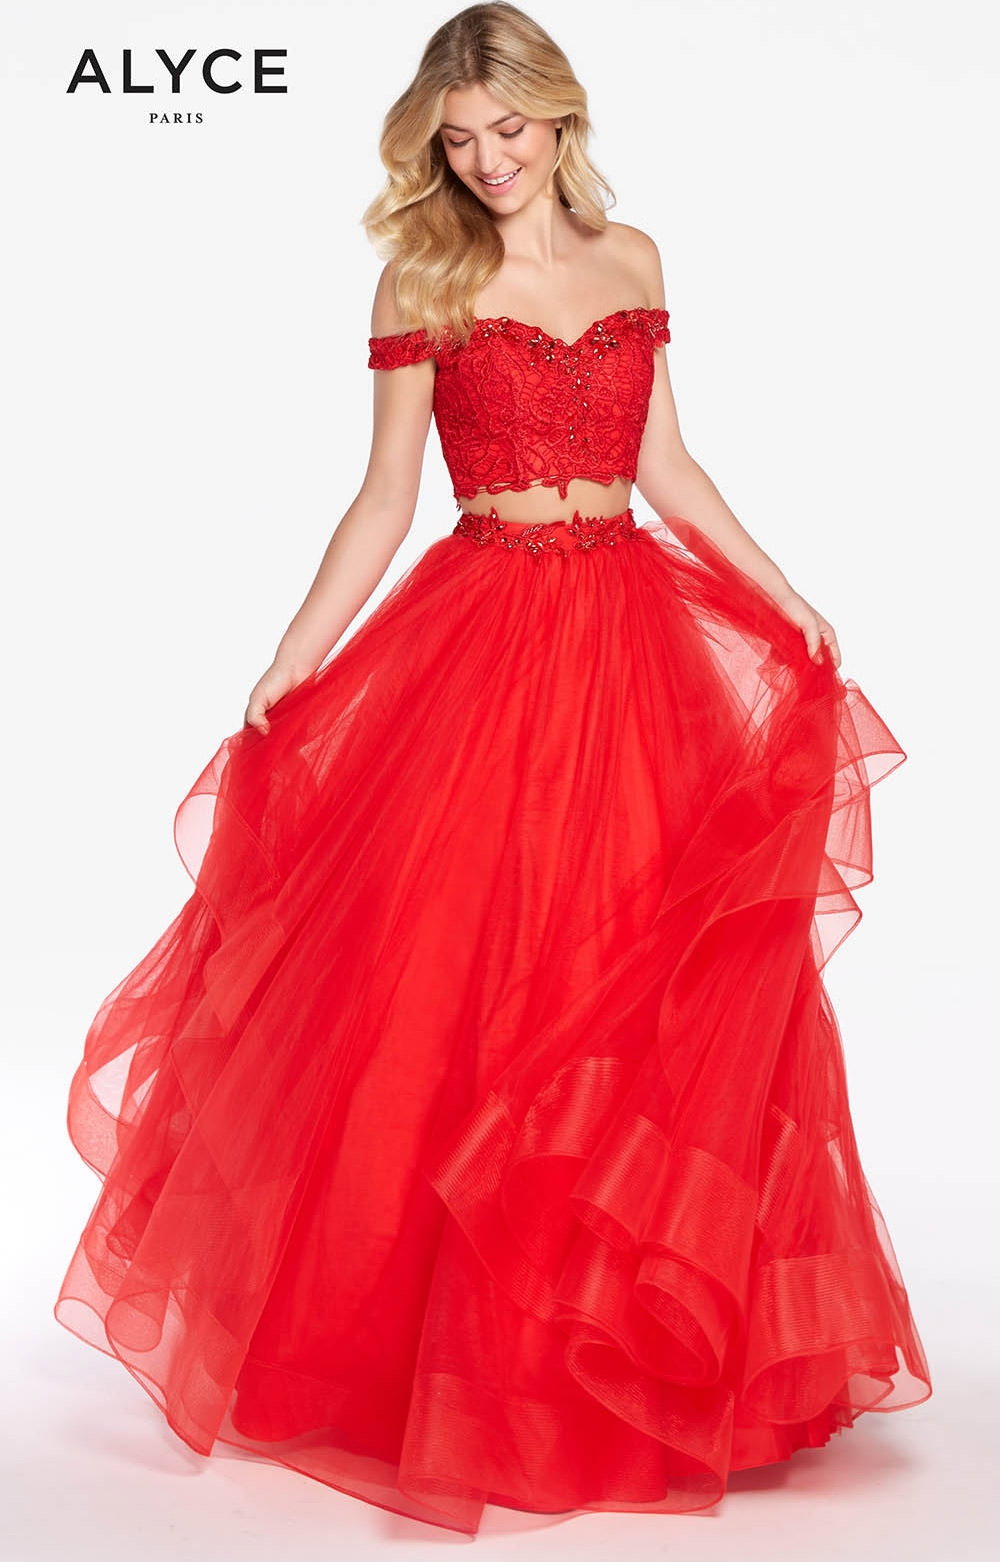 Alyce Paris 1300 - Off the Shoulder Tulle Ball Gown Prom Dress